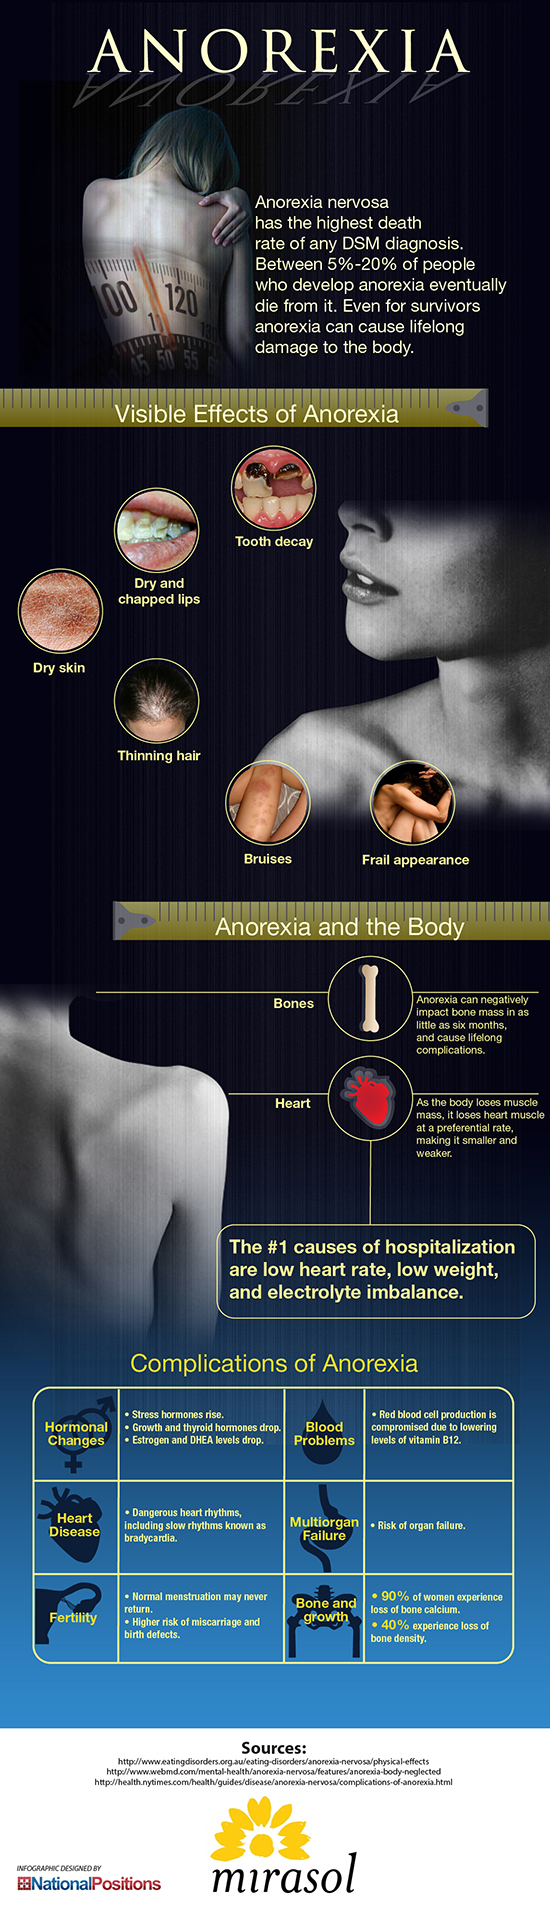 What are the symptoms of anorexia nervosa?